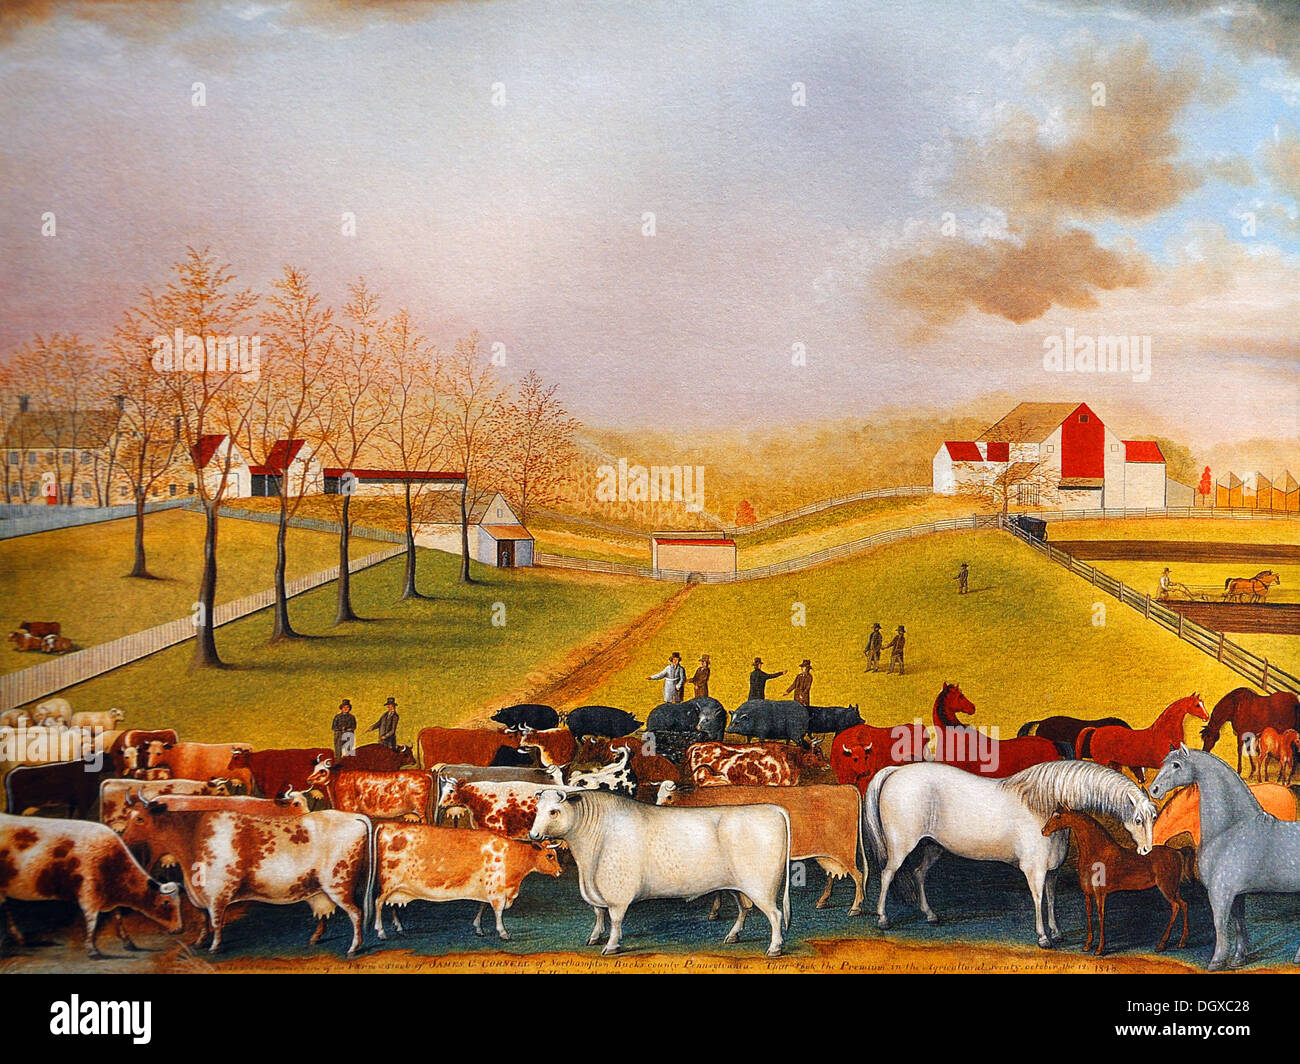 The Cornell Farm - by Edward Hicks, 1848 - Stock Image